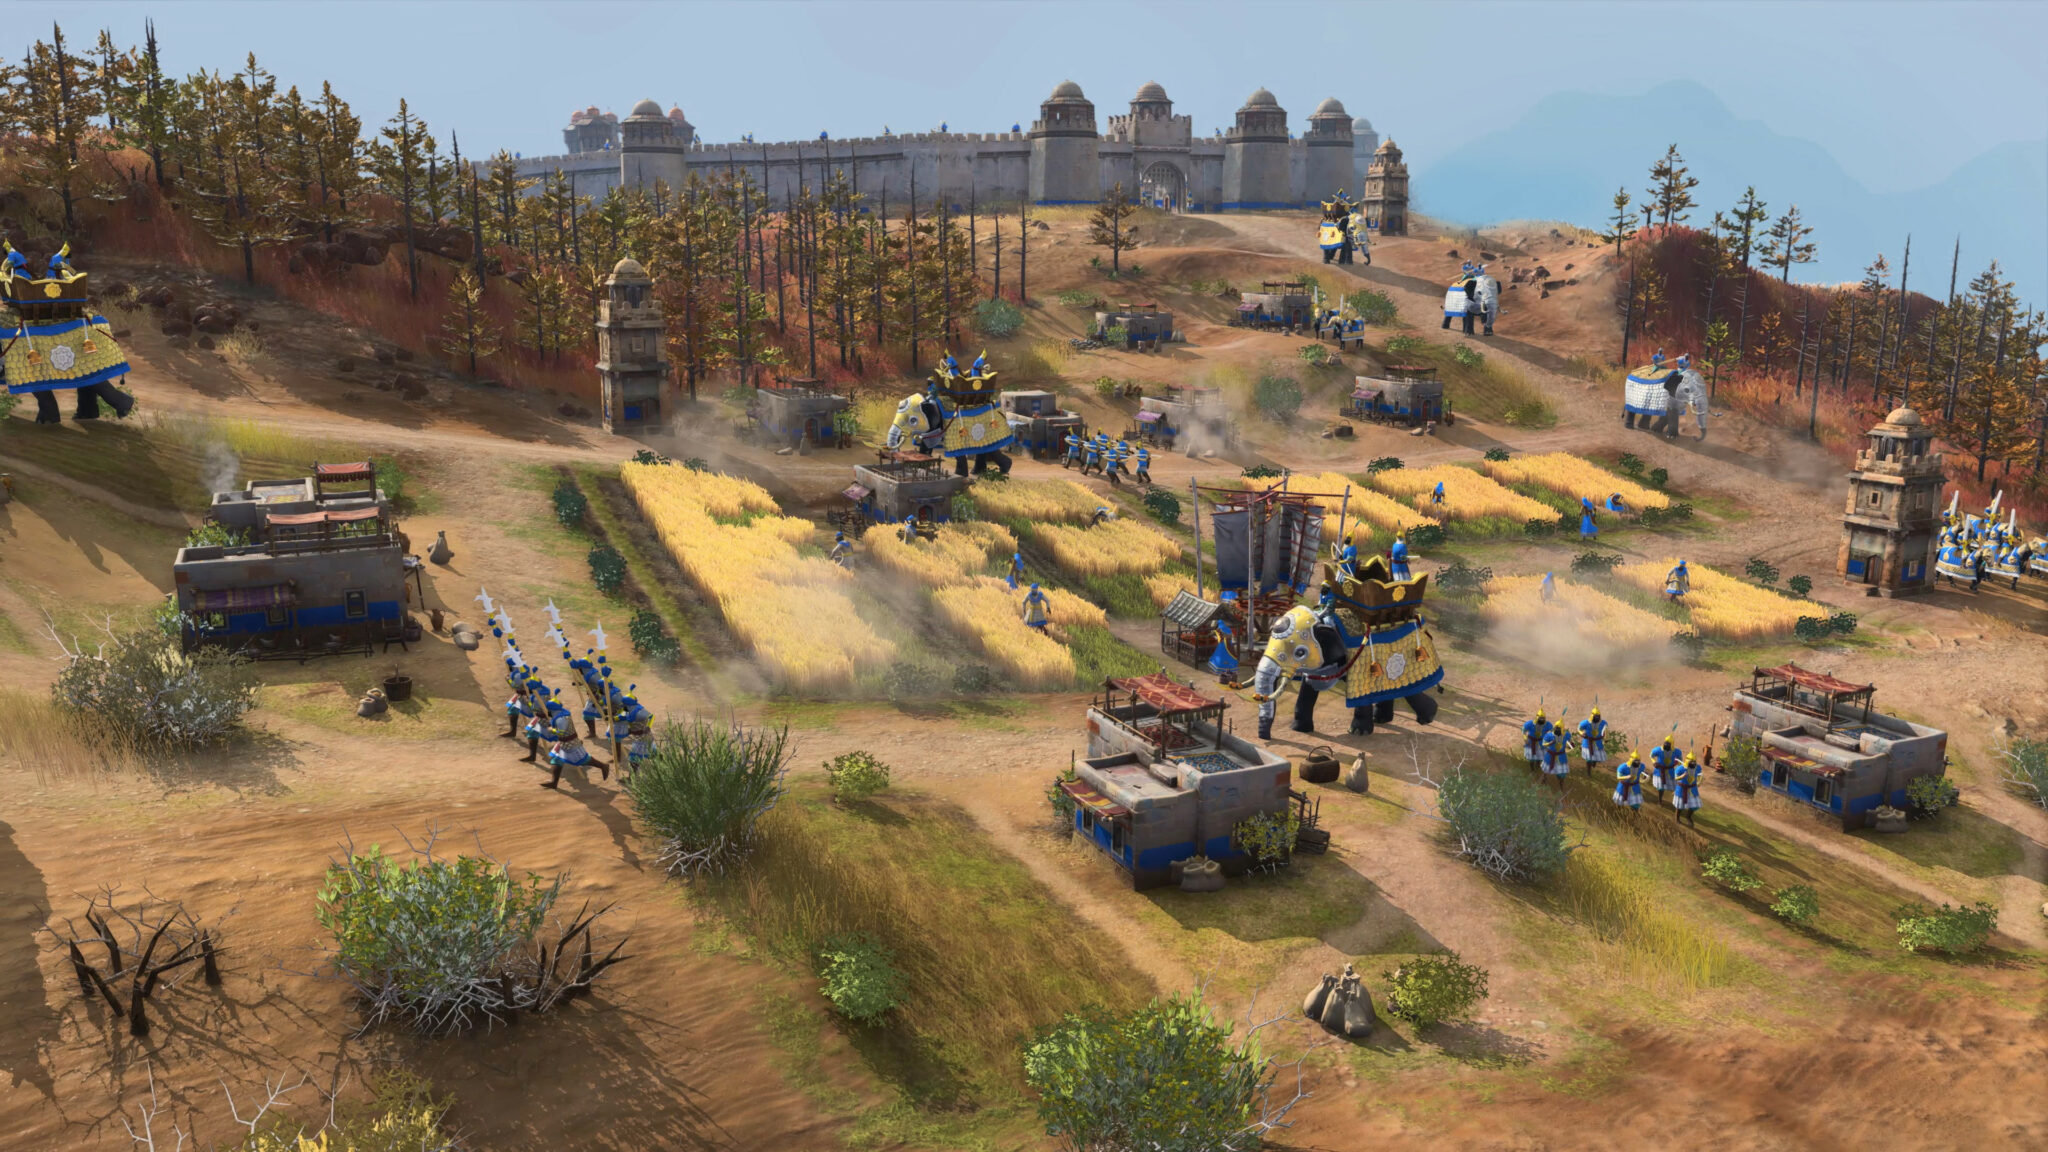 Age of Empires IV Release Window Set to Fall 2021; New Gameplay Out Now